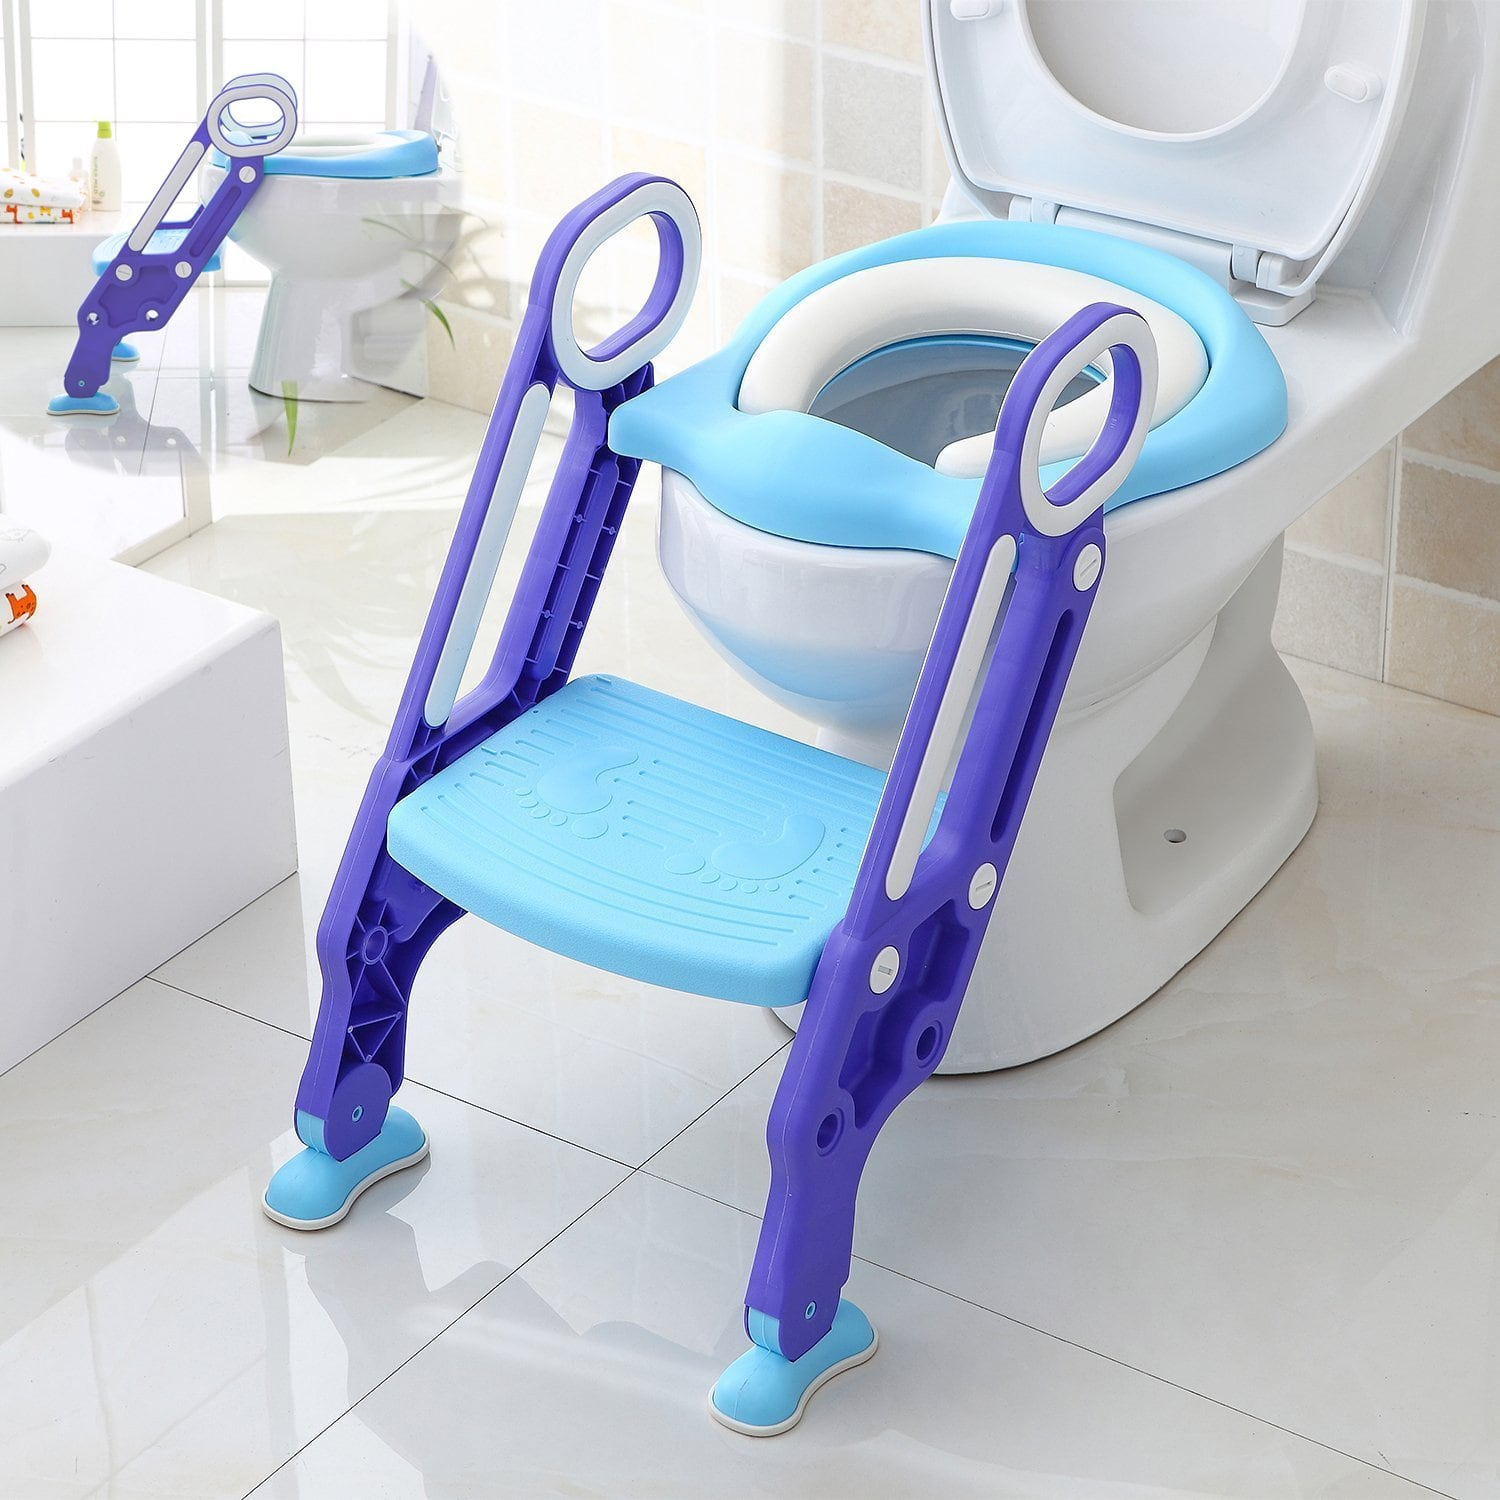 Makone Potty Trainer Seat Adjustable Baby Potty Toilet Ladder Seat $25.20 + Fs